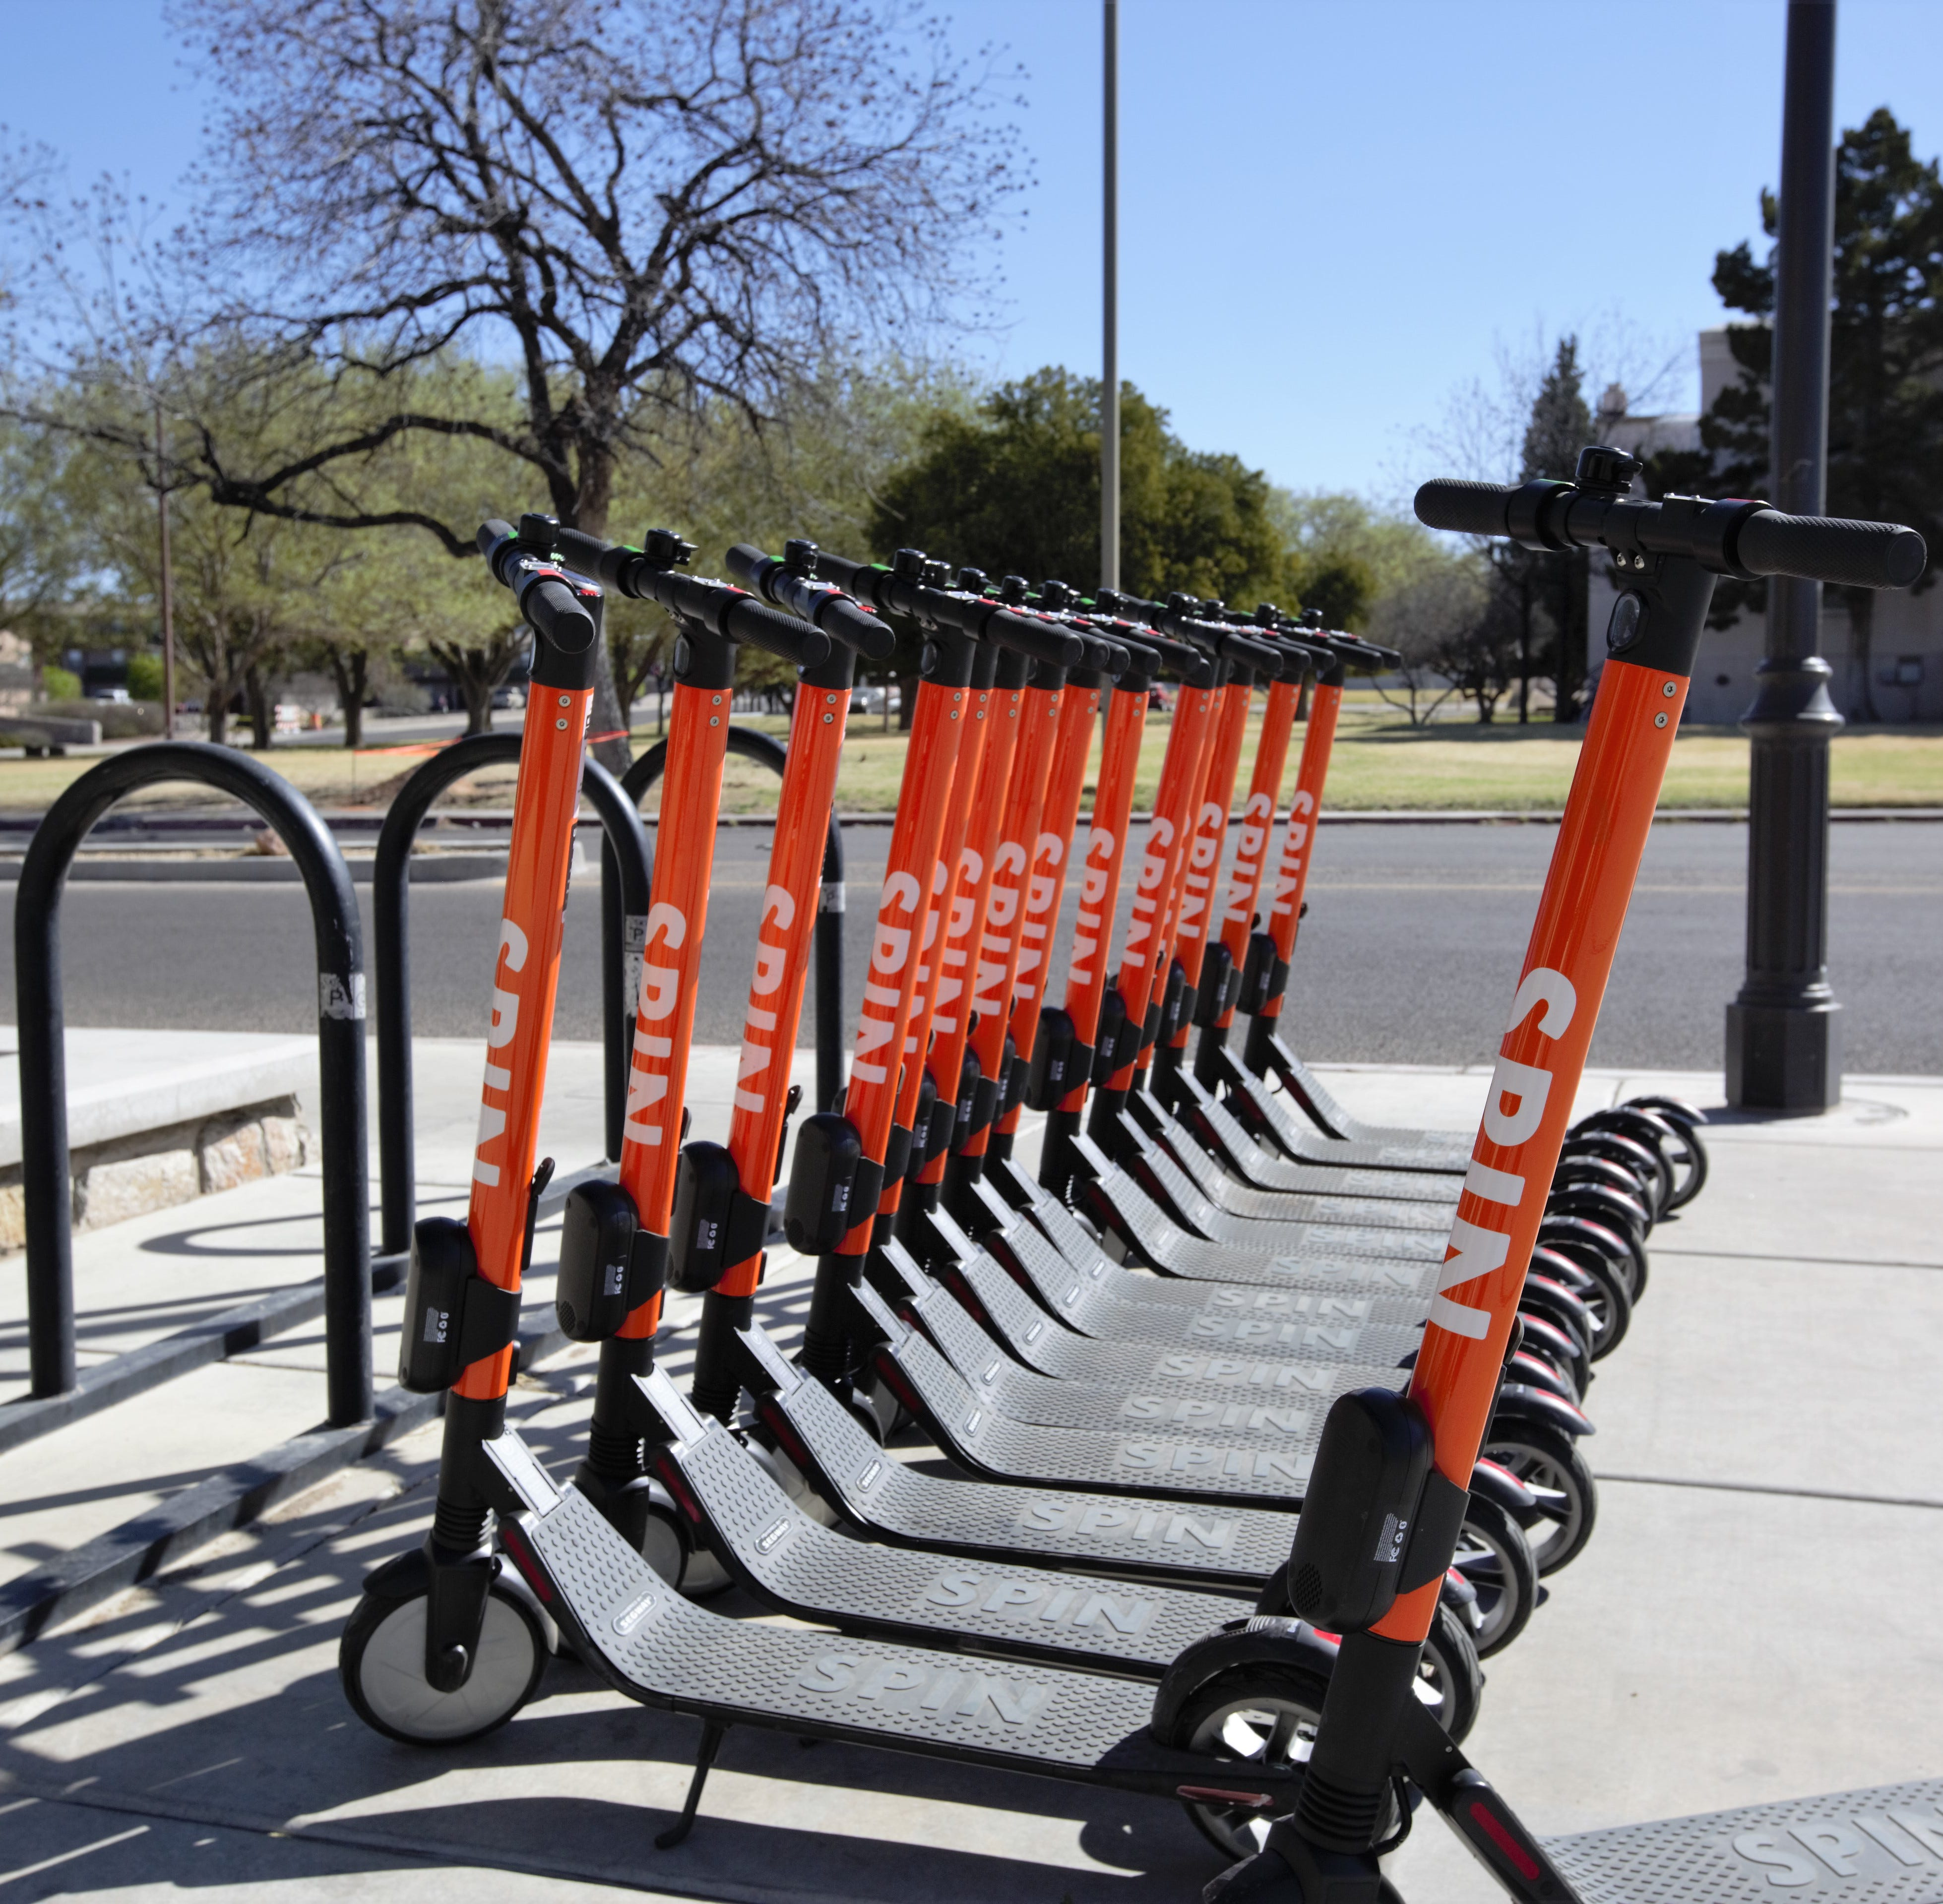 Scooters set to stay at NMSU, but are they even legal?